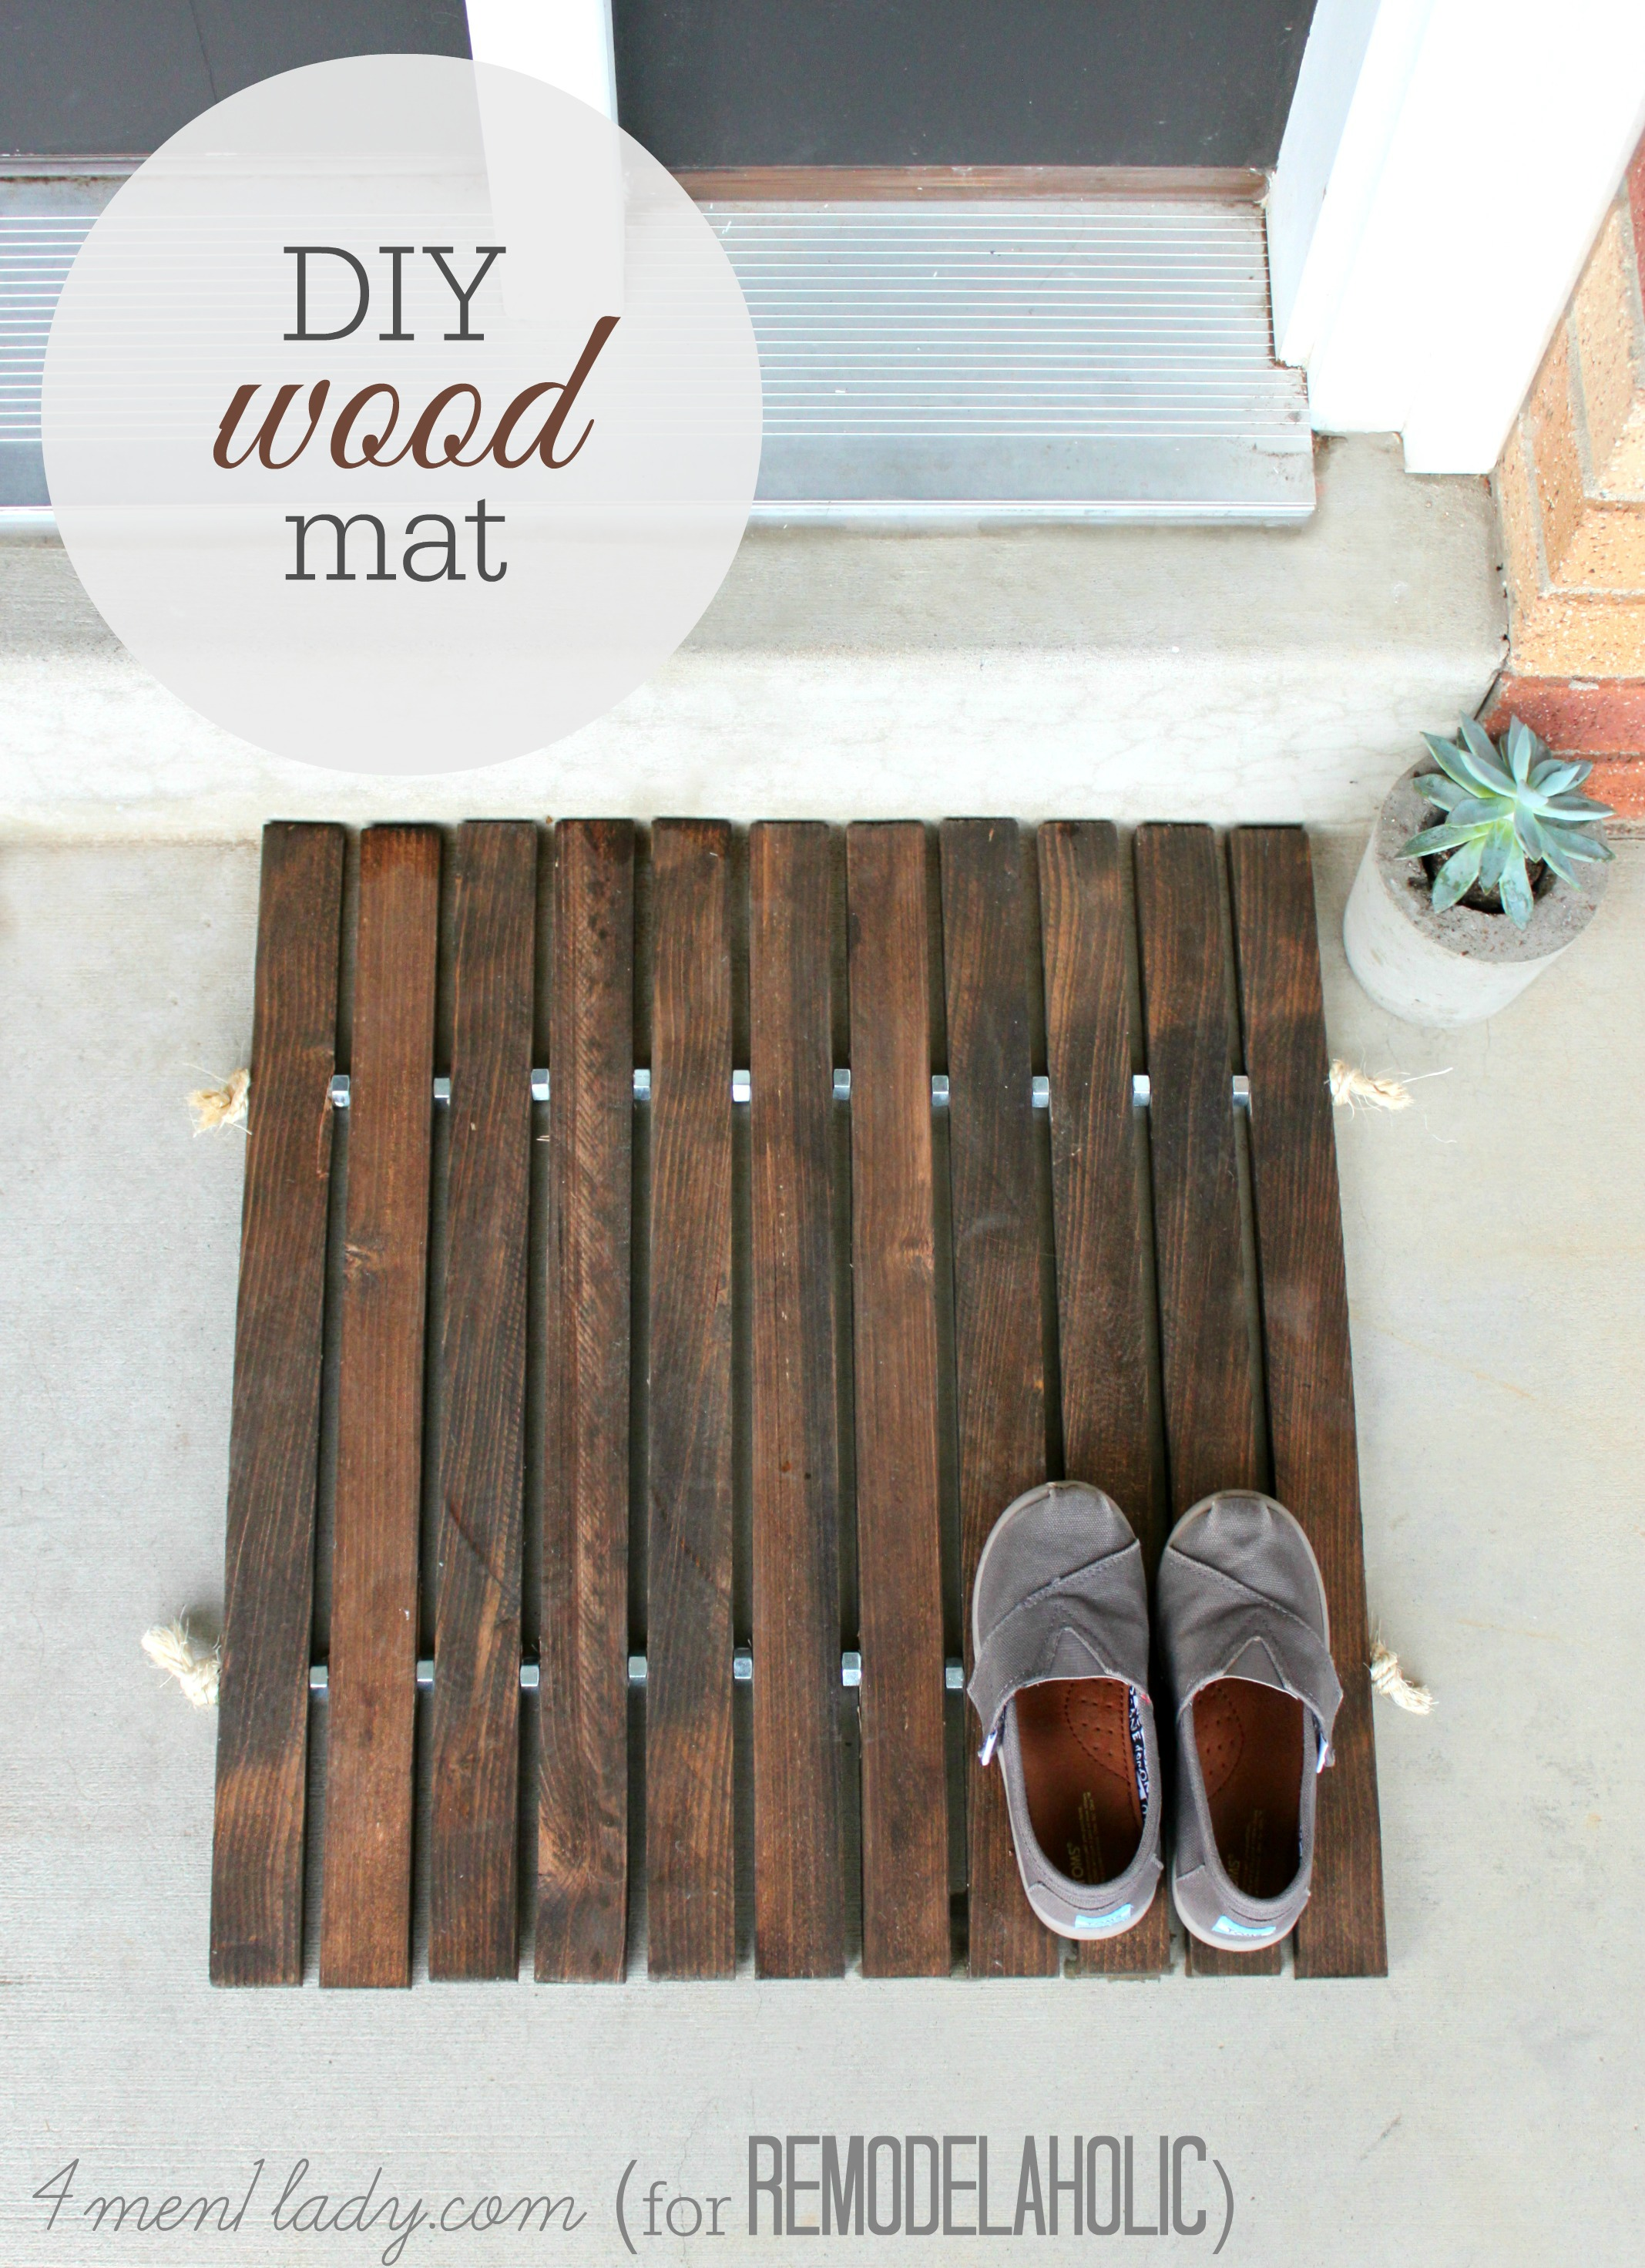 DIY Wood Mat by (4men1lady.com for @Remodelaholic)